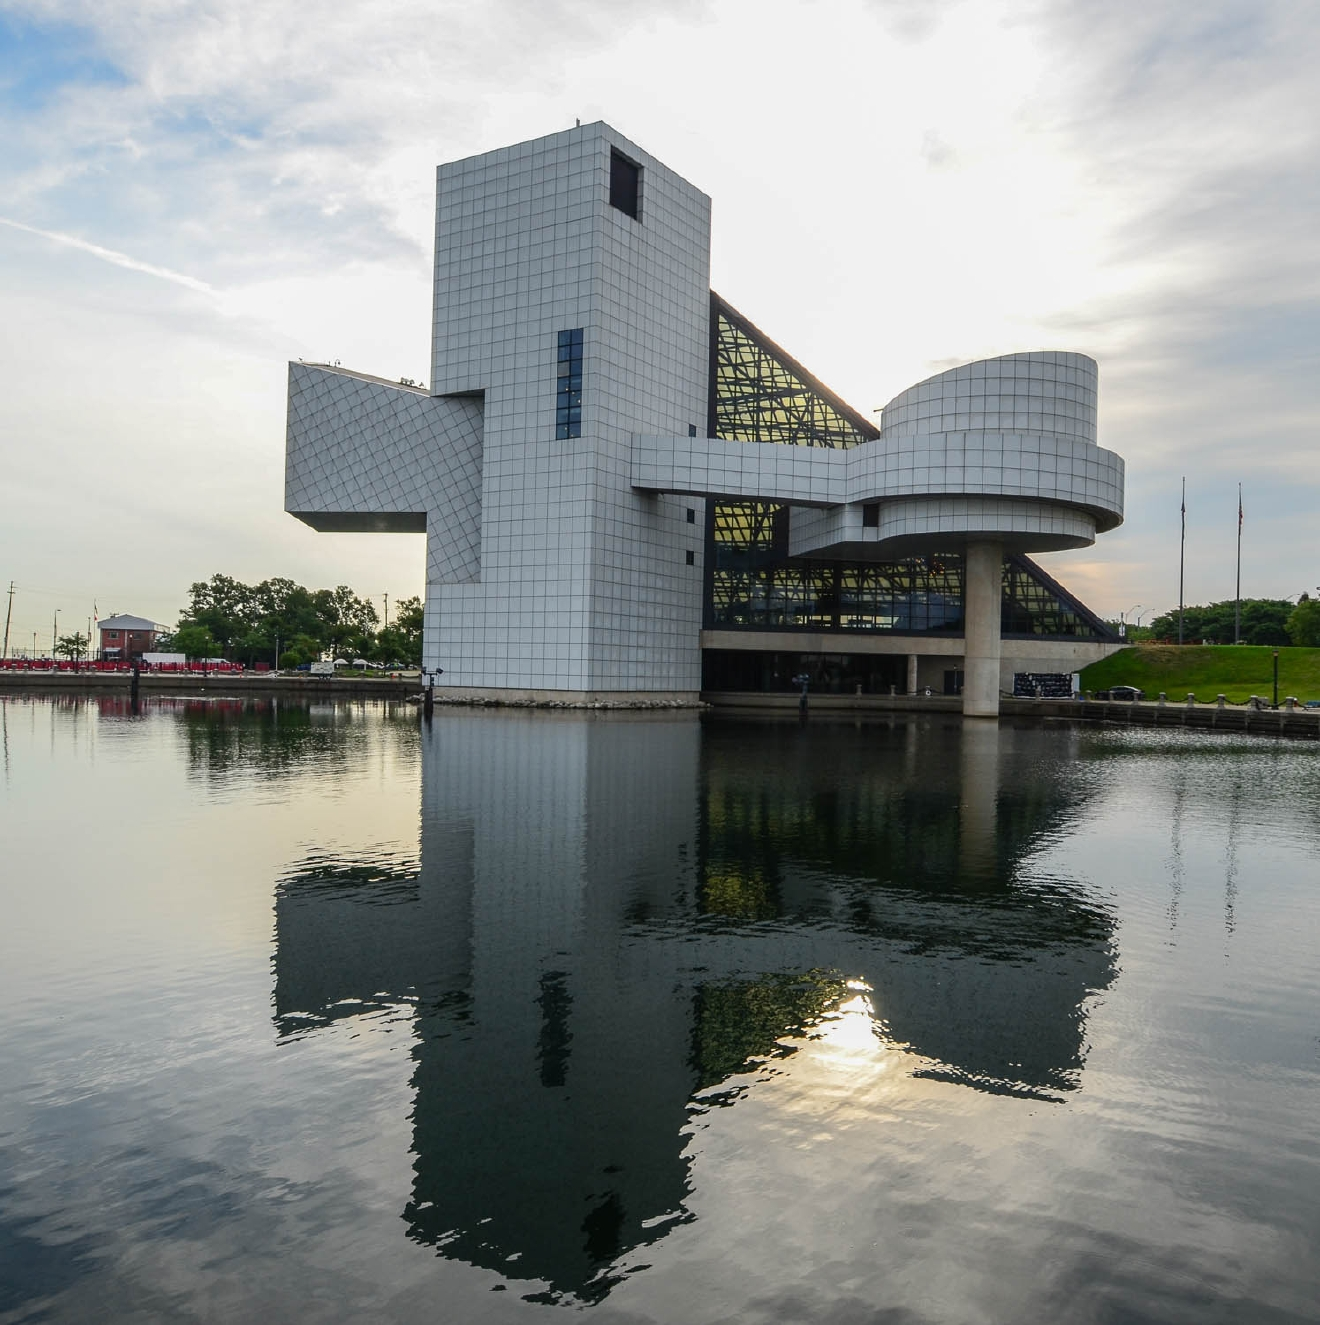 Cleveland isn't so bad! Just take a look at the Rock and Roll Hall of Fame! / Image: Sherry Lachelle Photography